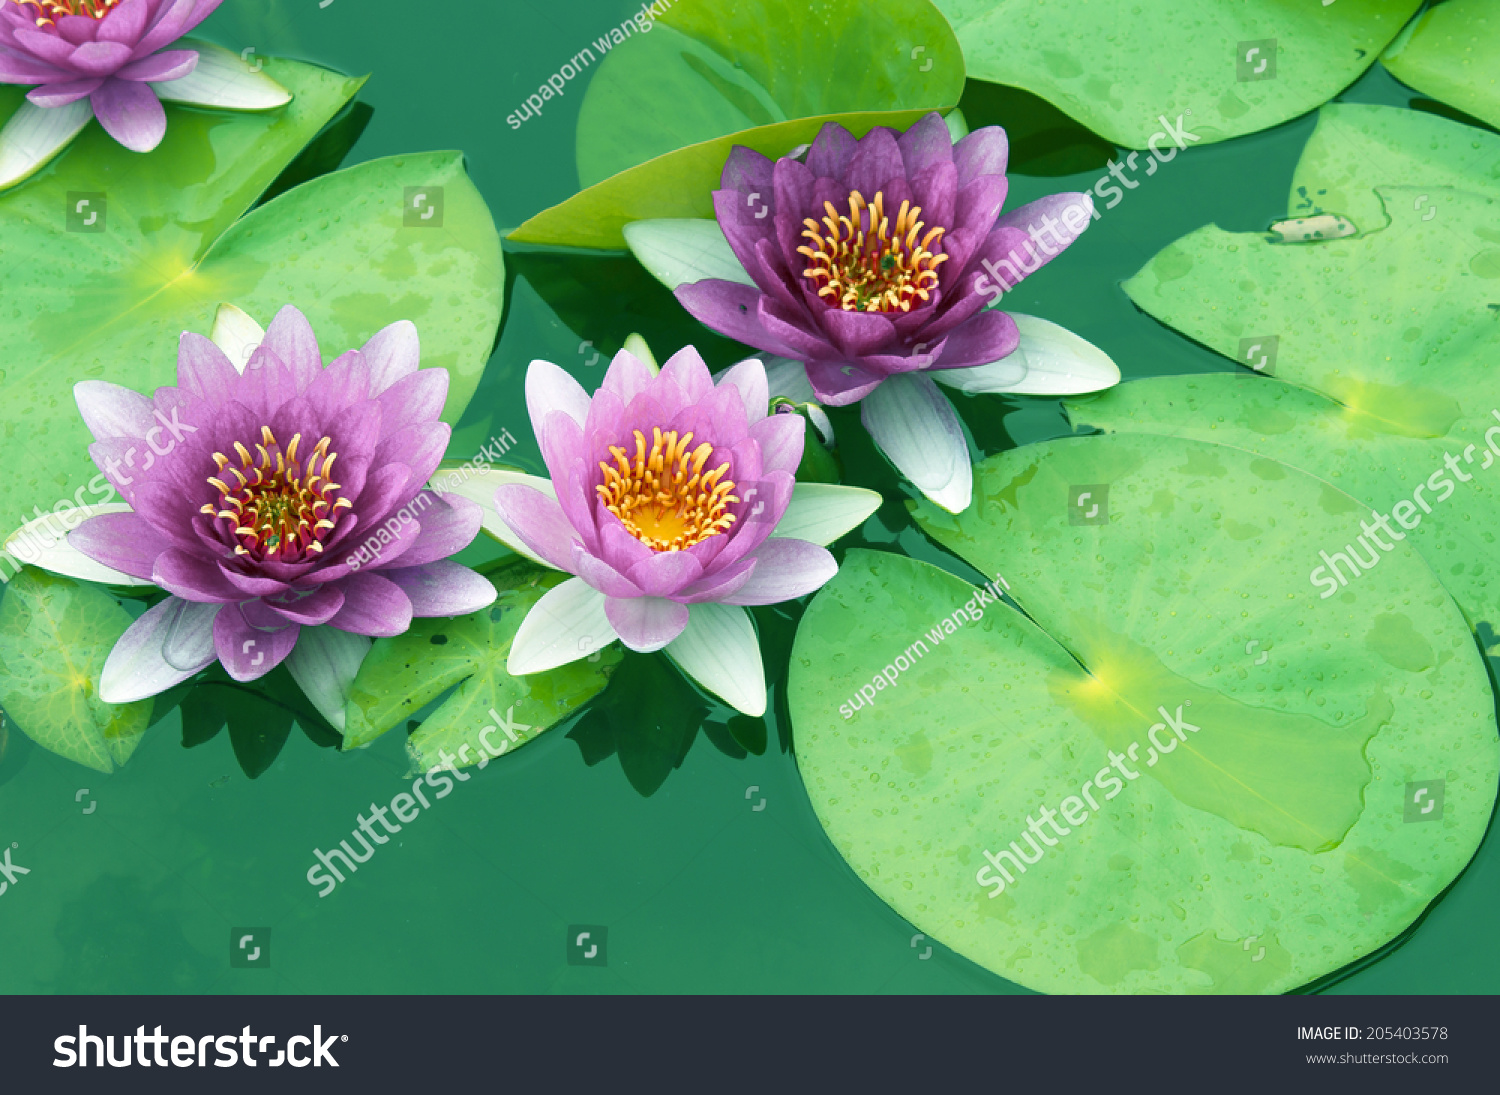 This Beautiful Water Lily Lotus Flower Stock Photo Edit Now